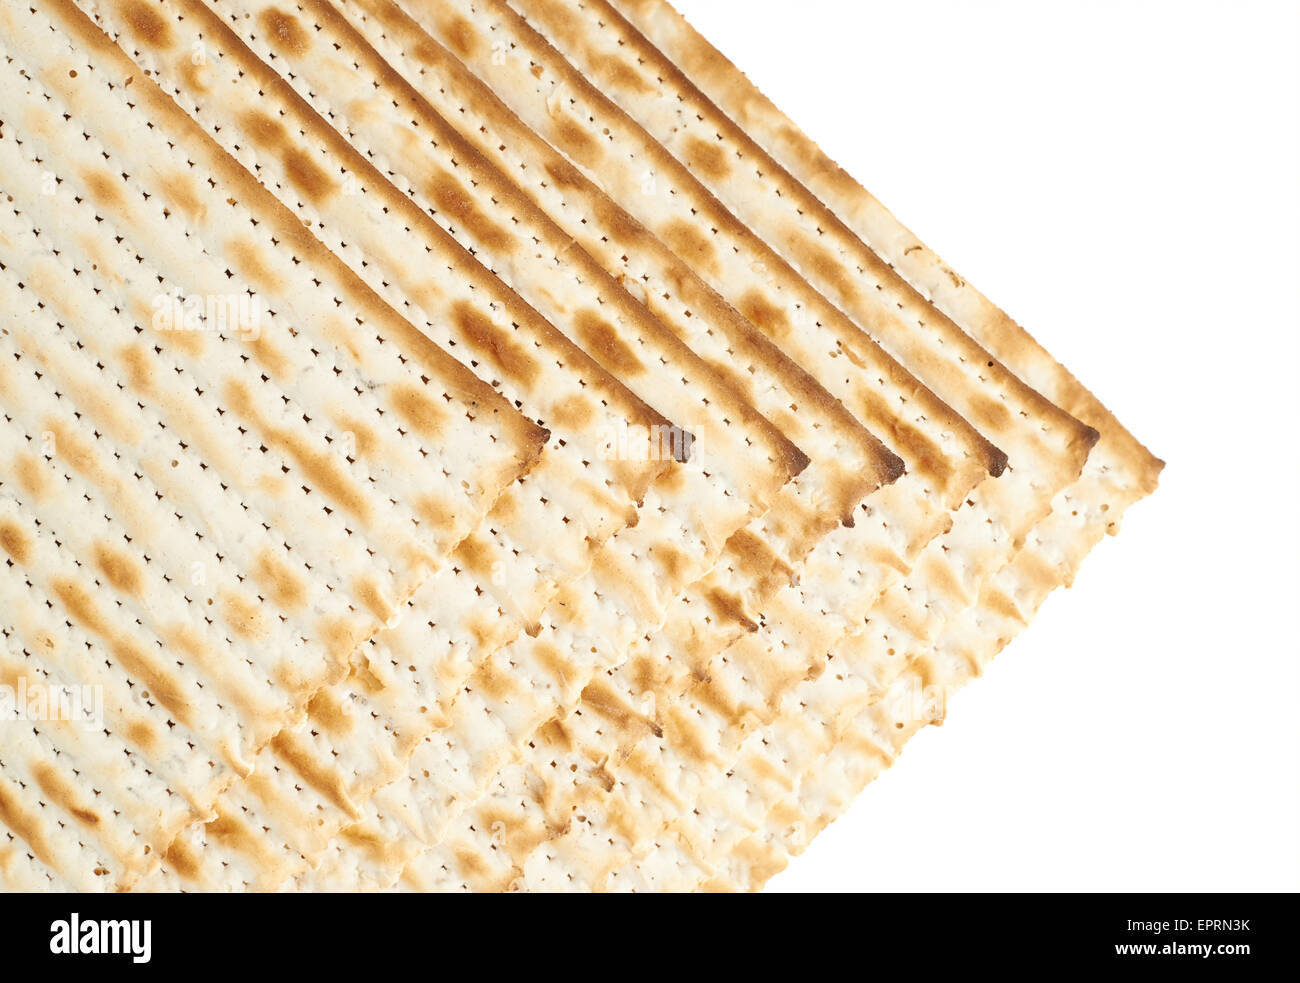 Multiple matza flatbreads lying one over another - Stock Image